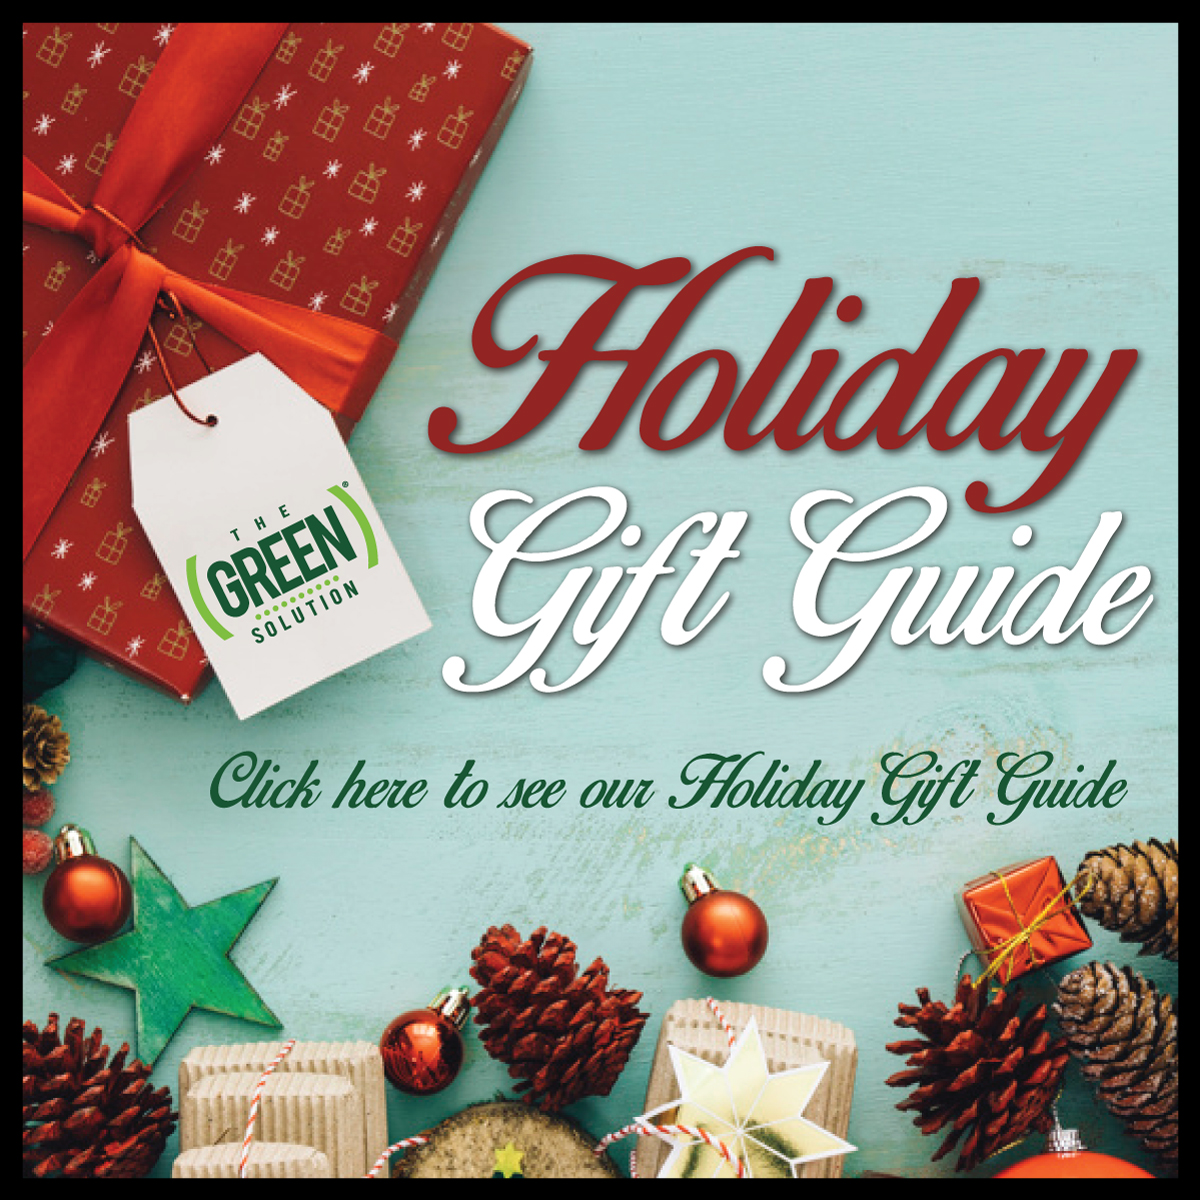 The Green Solution Holiday Gift Guide